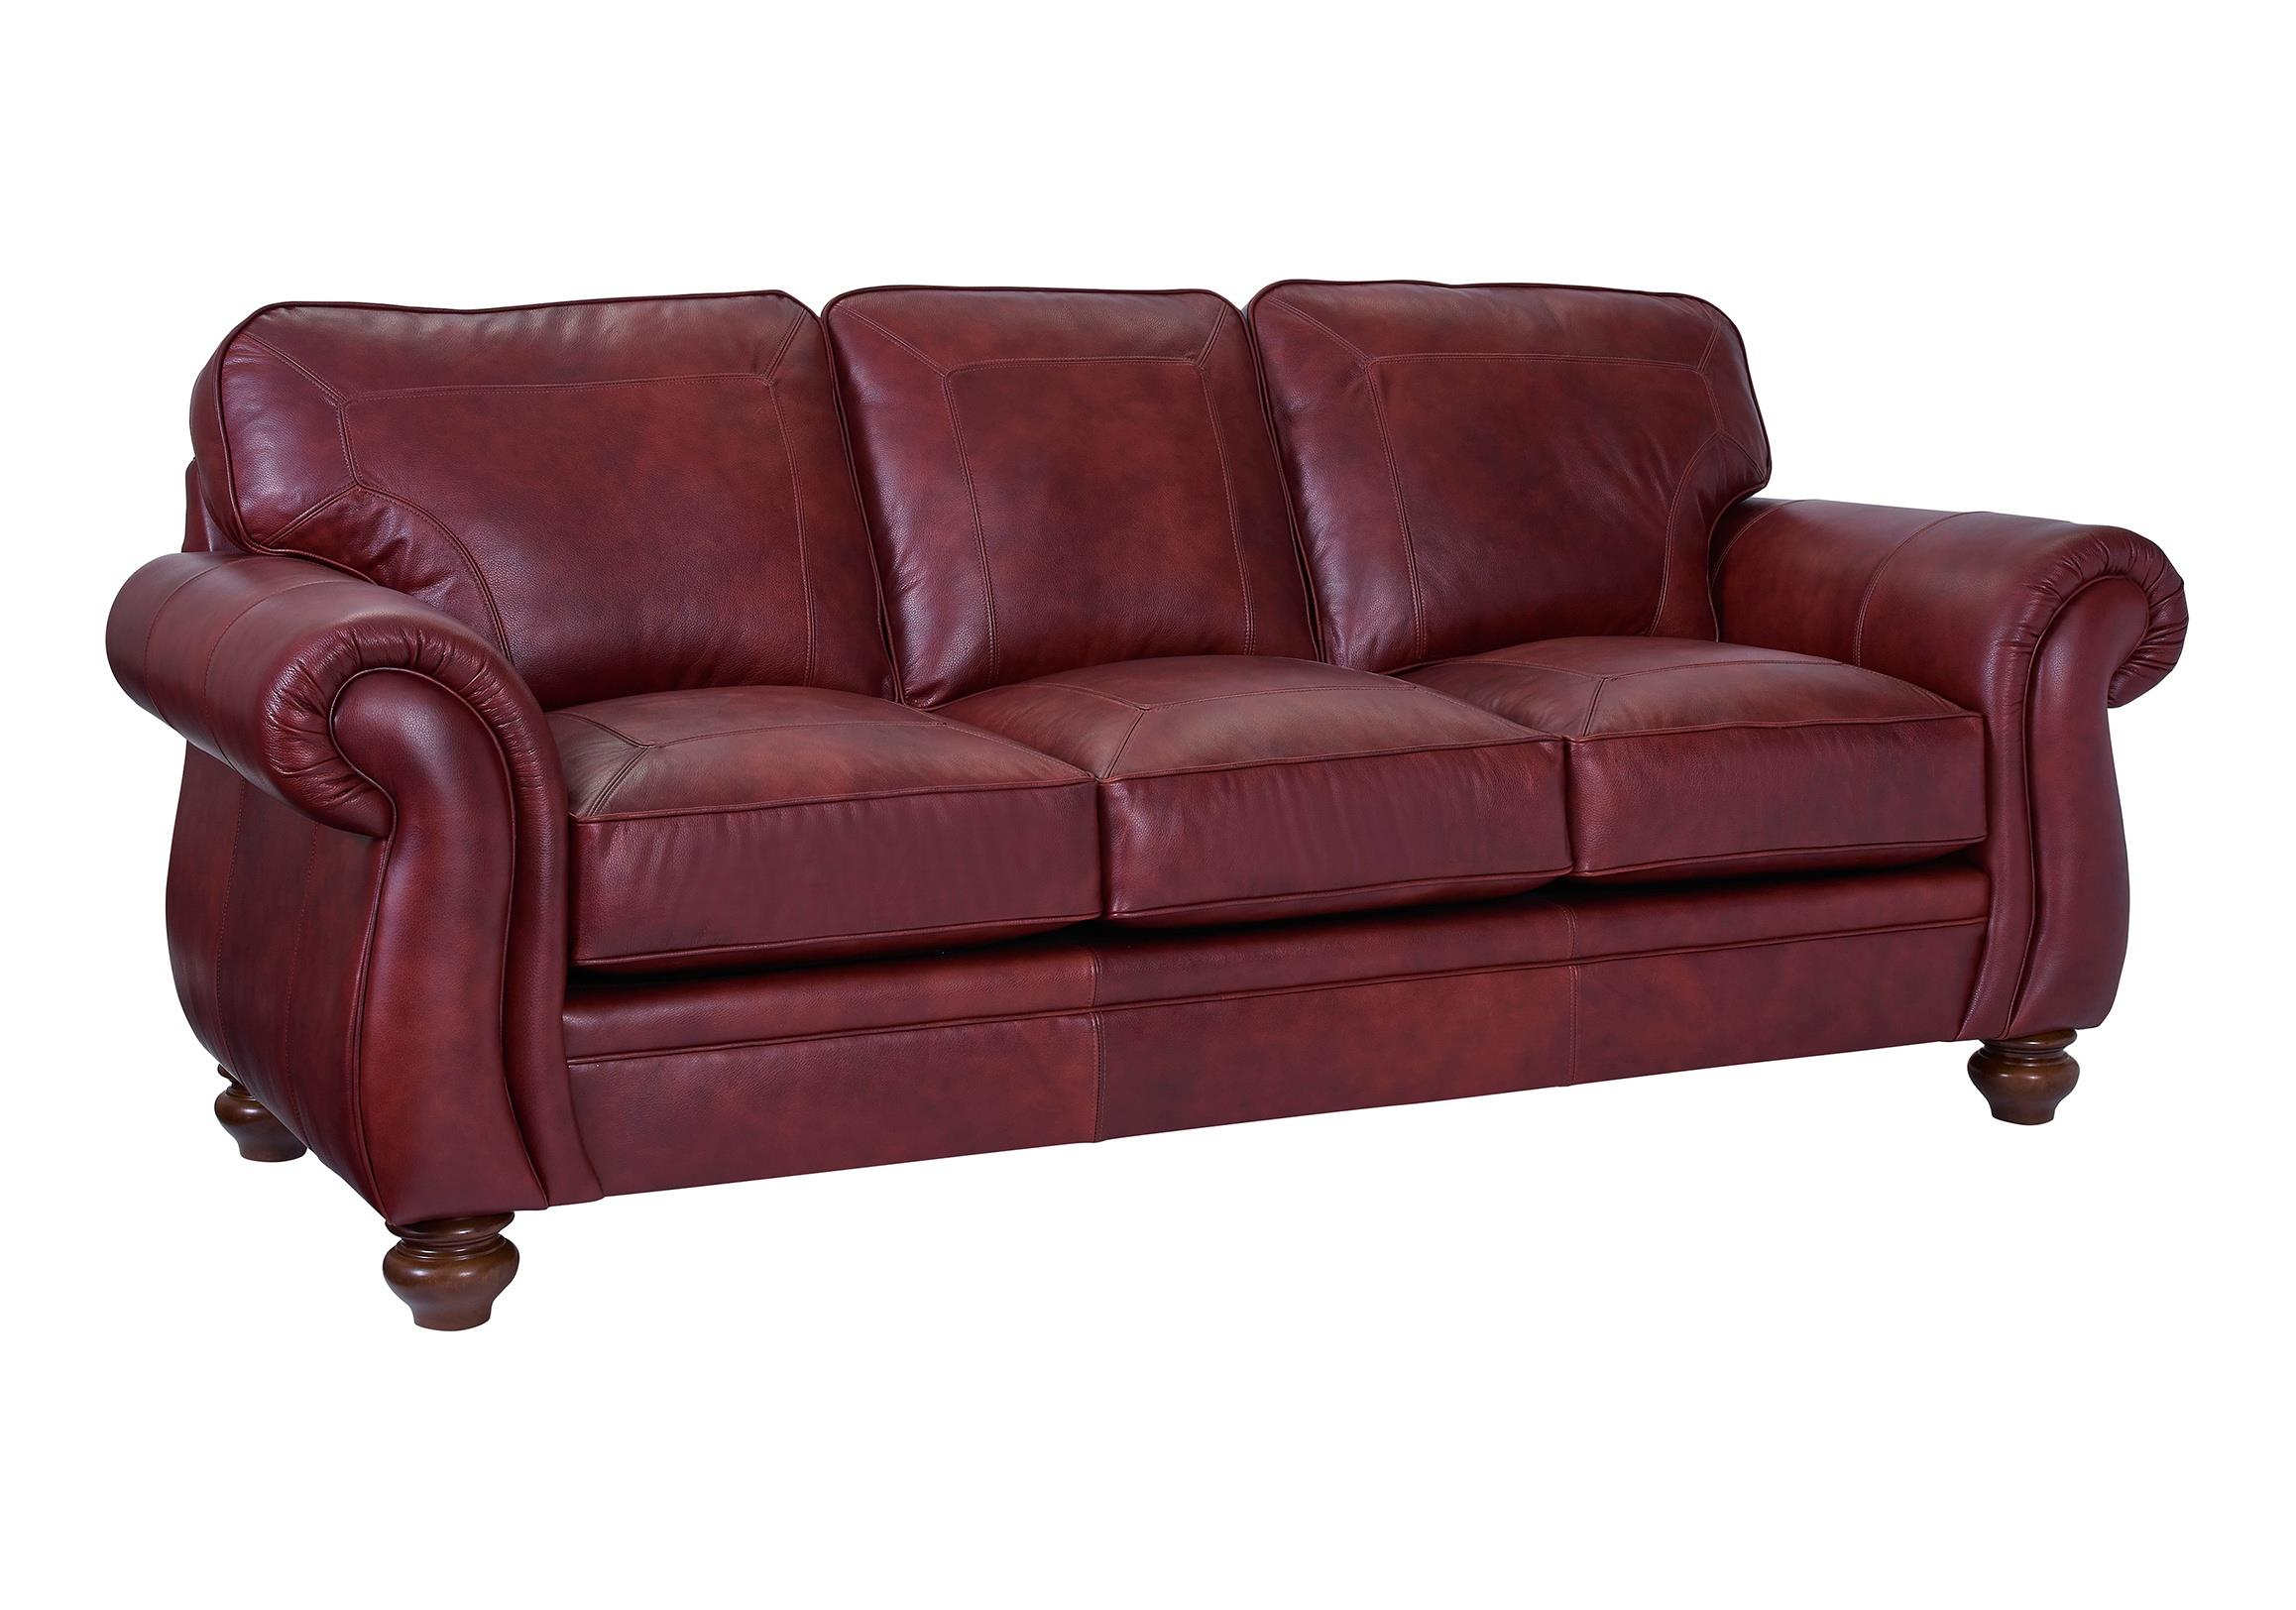 Broyhill furniture cassandra l3688 3 traditional for Traditional couches